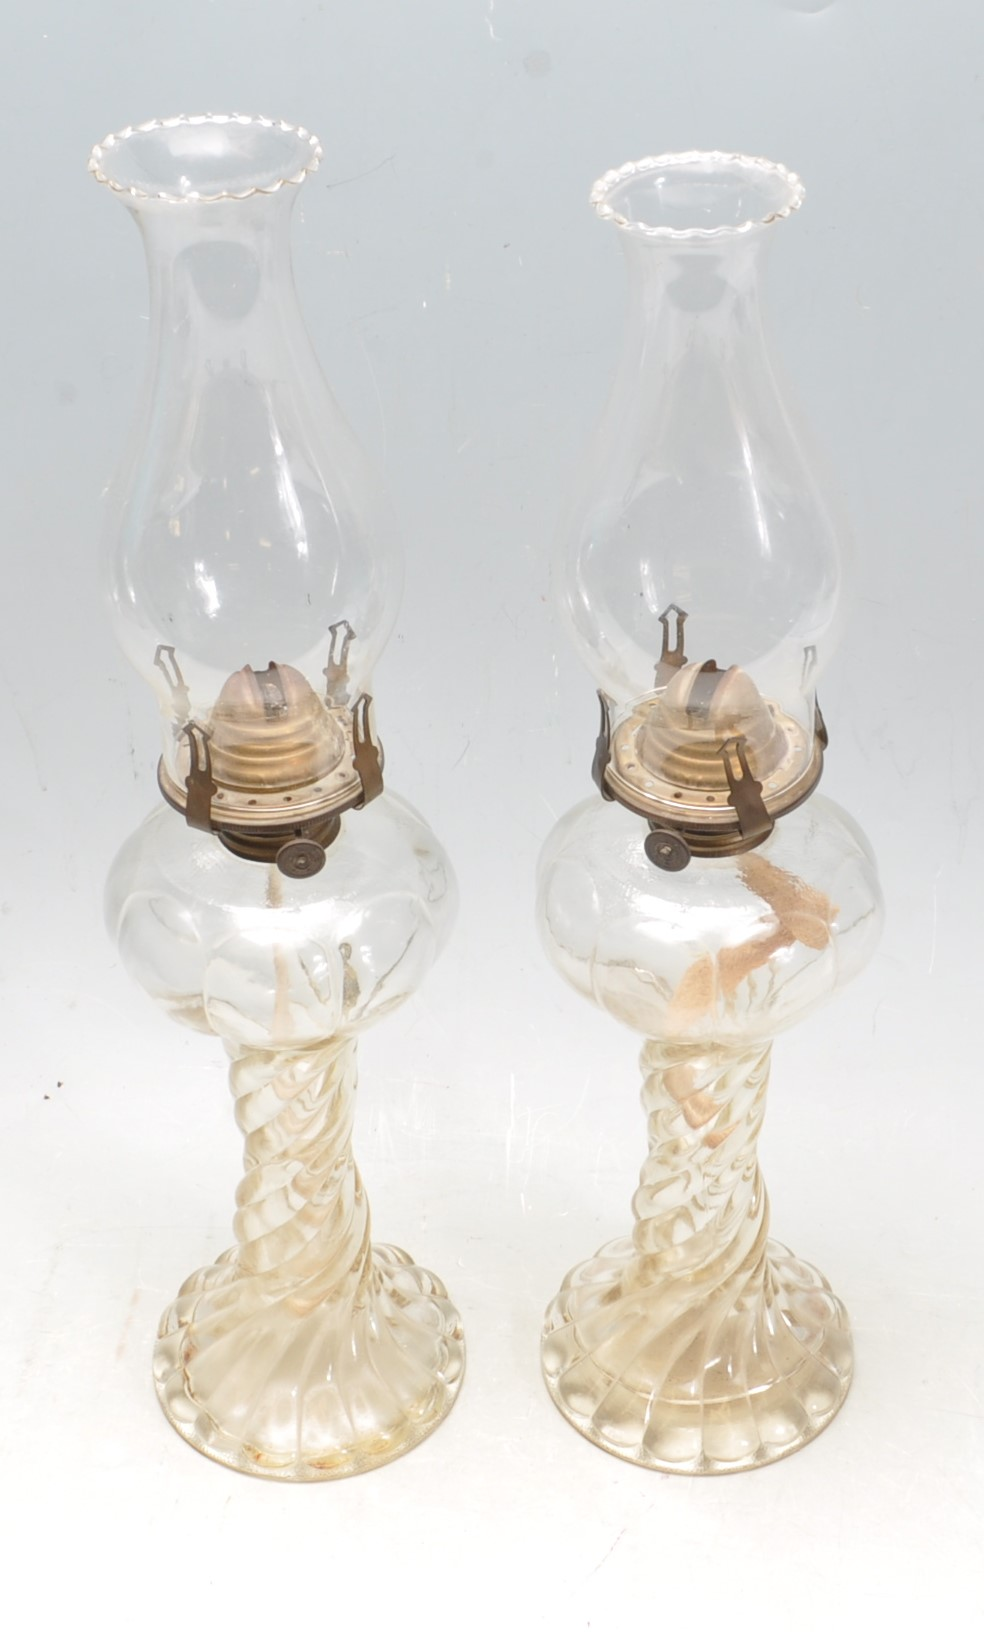 PAIR OF EARLY 20TH CENTURY 1930S ART DECO ERA GLASS OIL LAMPS - Image 2 of 4